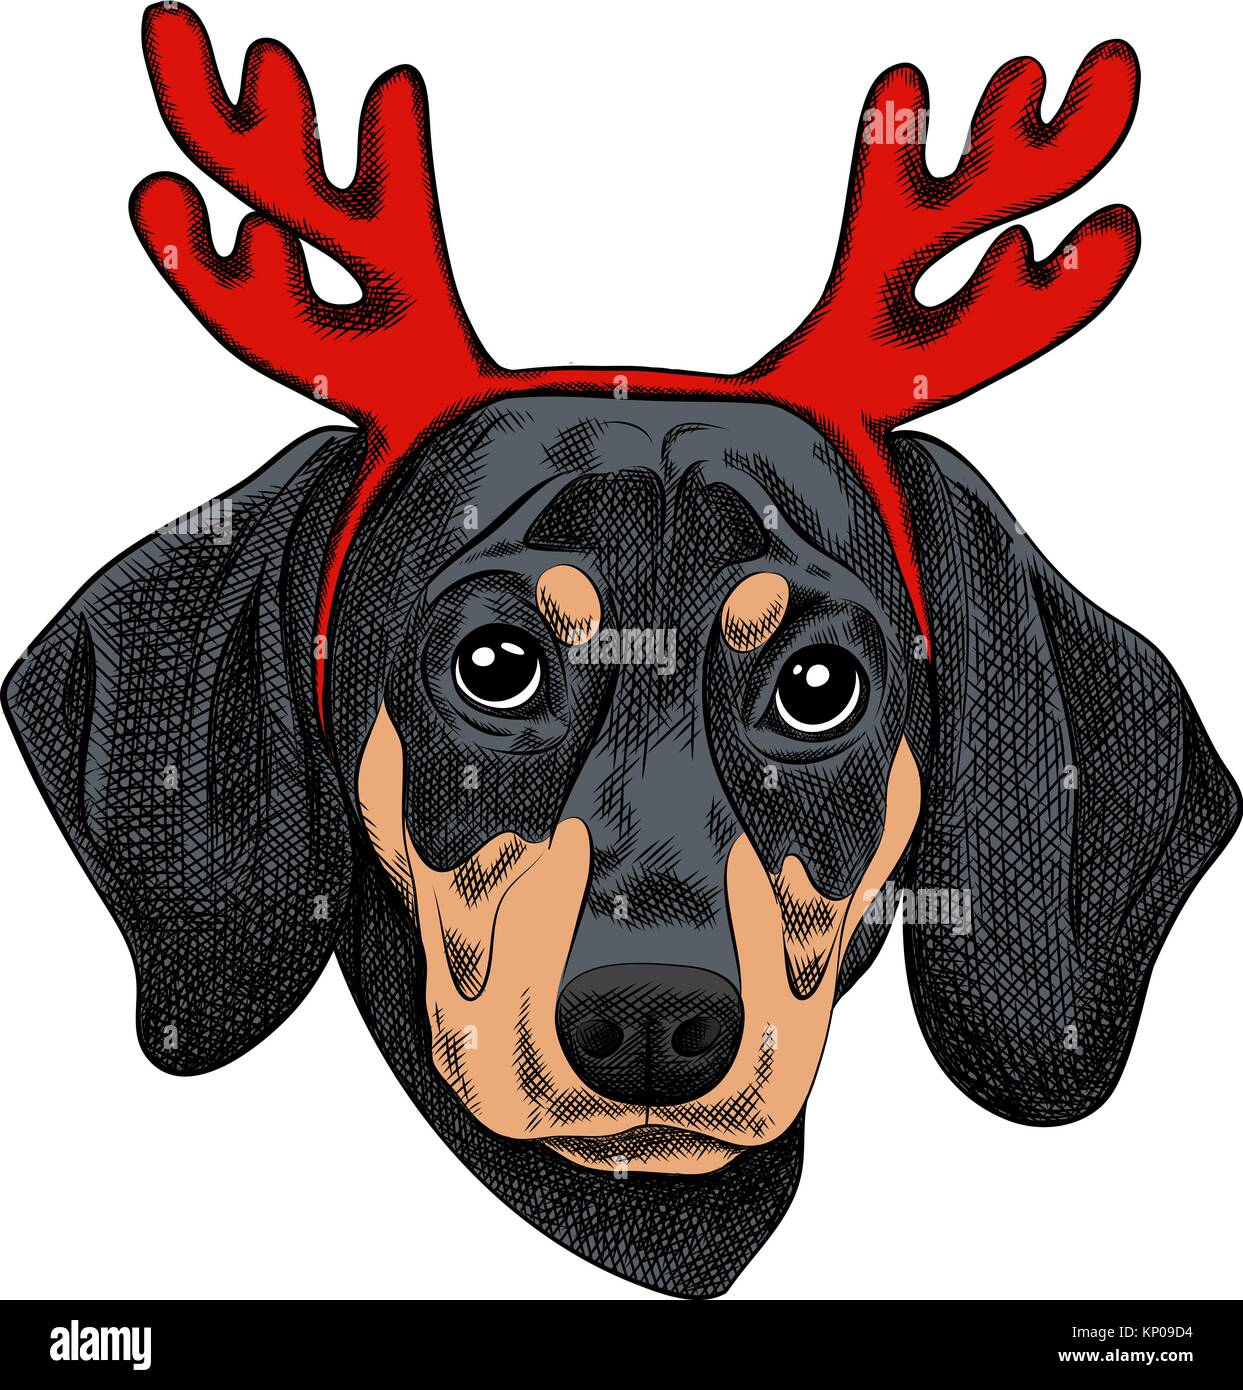 38a00325b86 Vector illustration of a Dachshund dog for a Christmas card. Dachshund with  horns of reindeer.